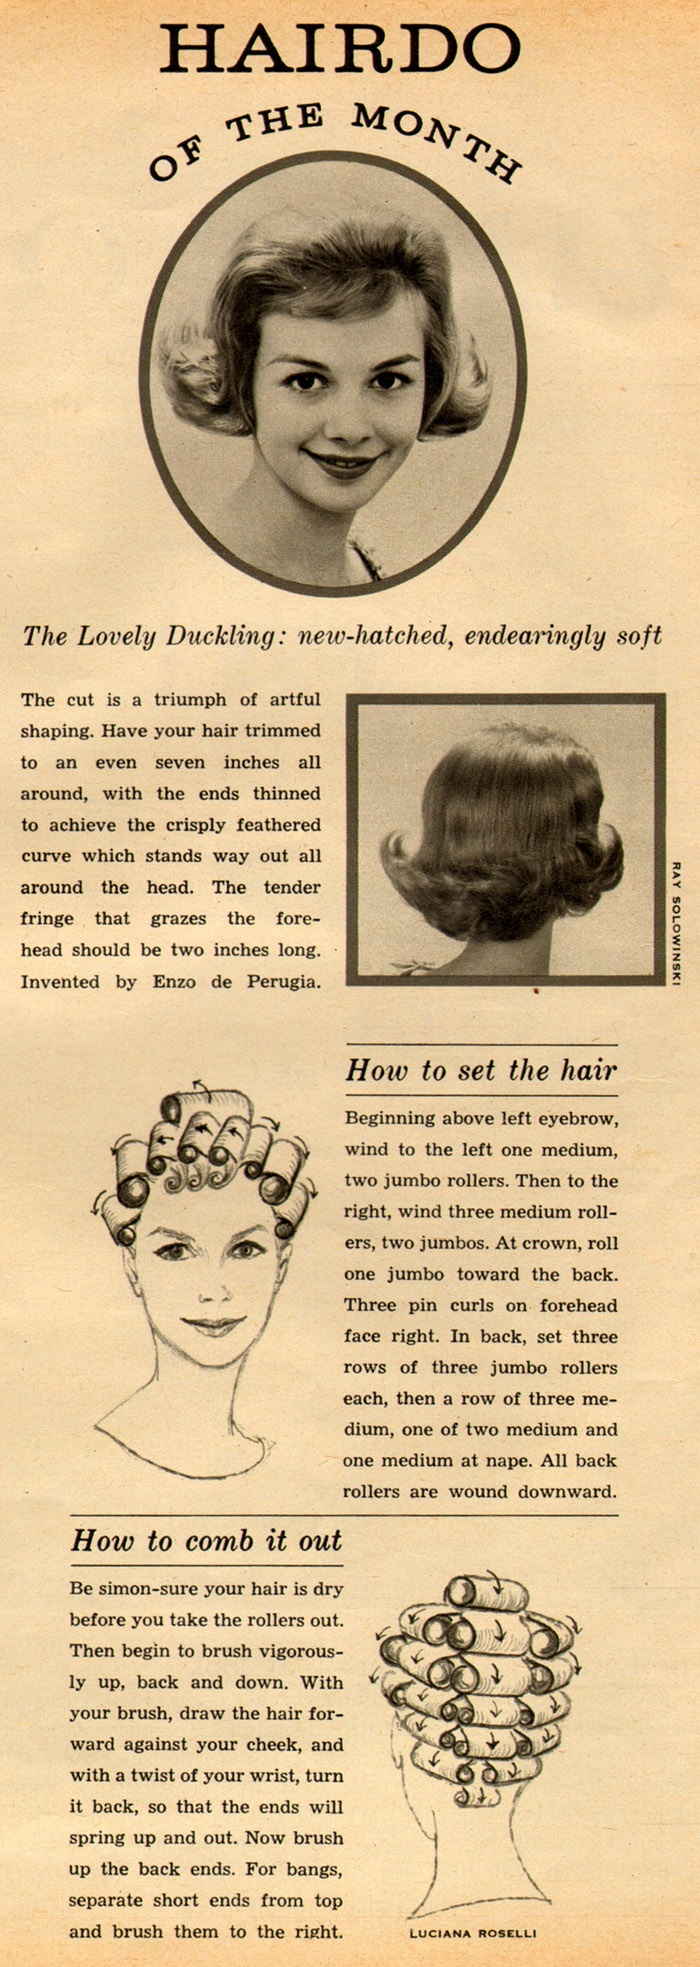 Hairdo of the Month: 'The Lovely Duckling', 1960